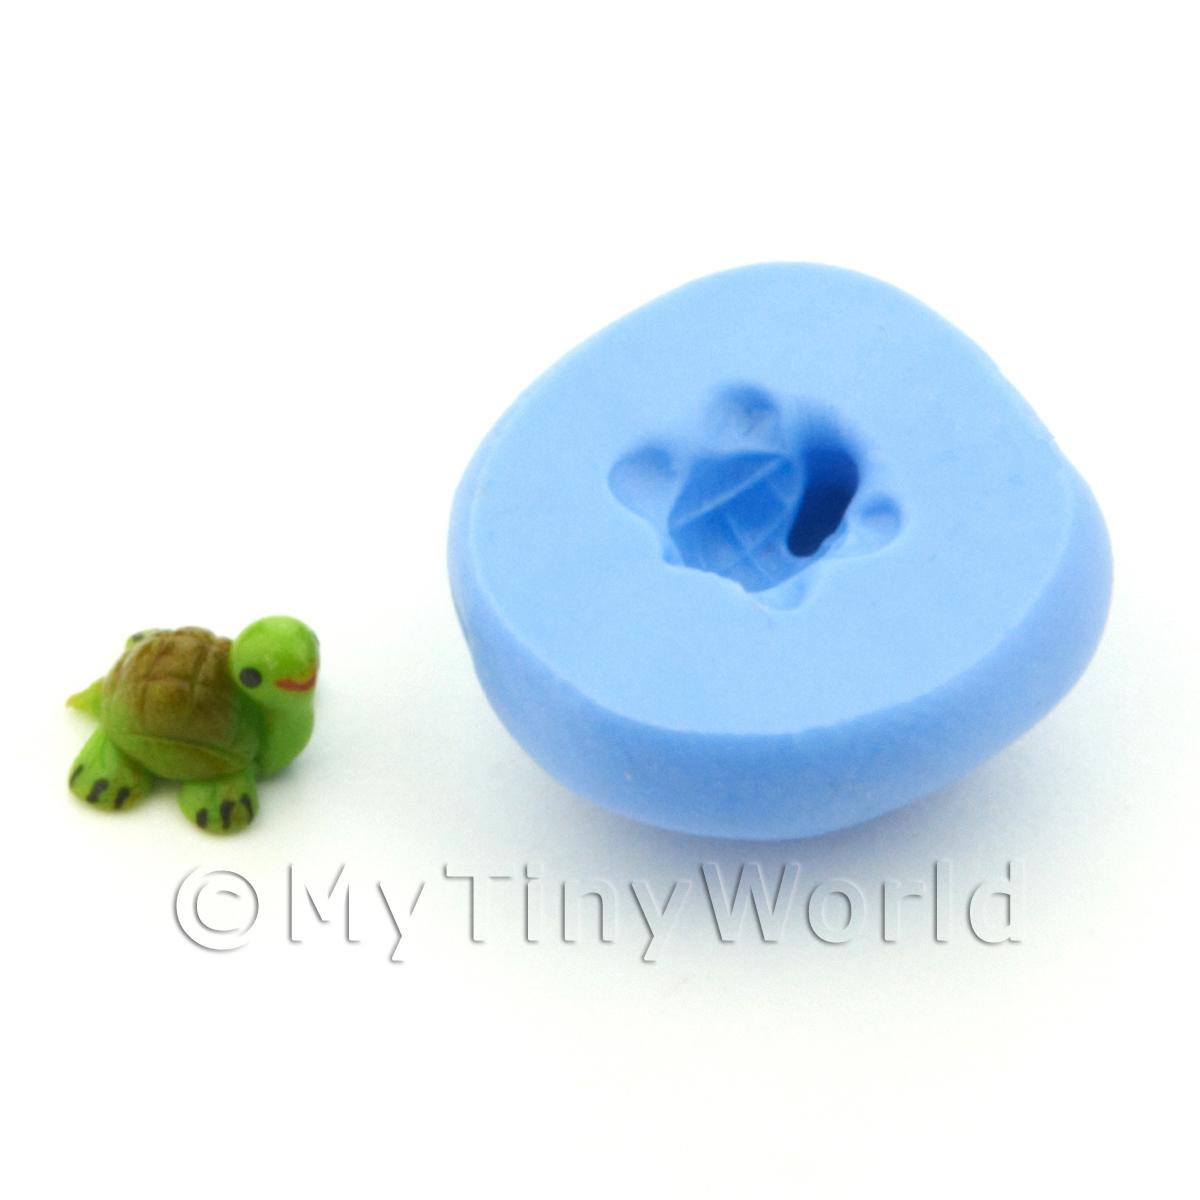 Dolls House Miniature 6mm Tortoise Silicone Mould